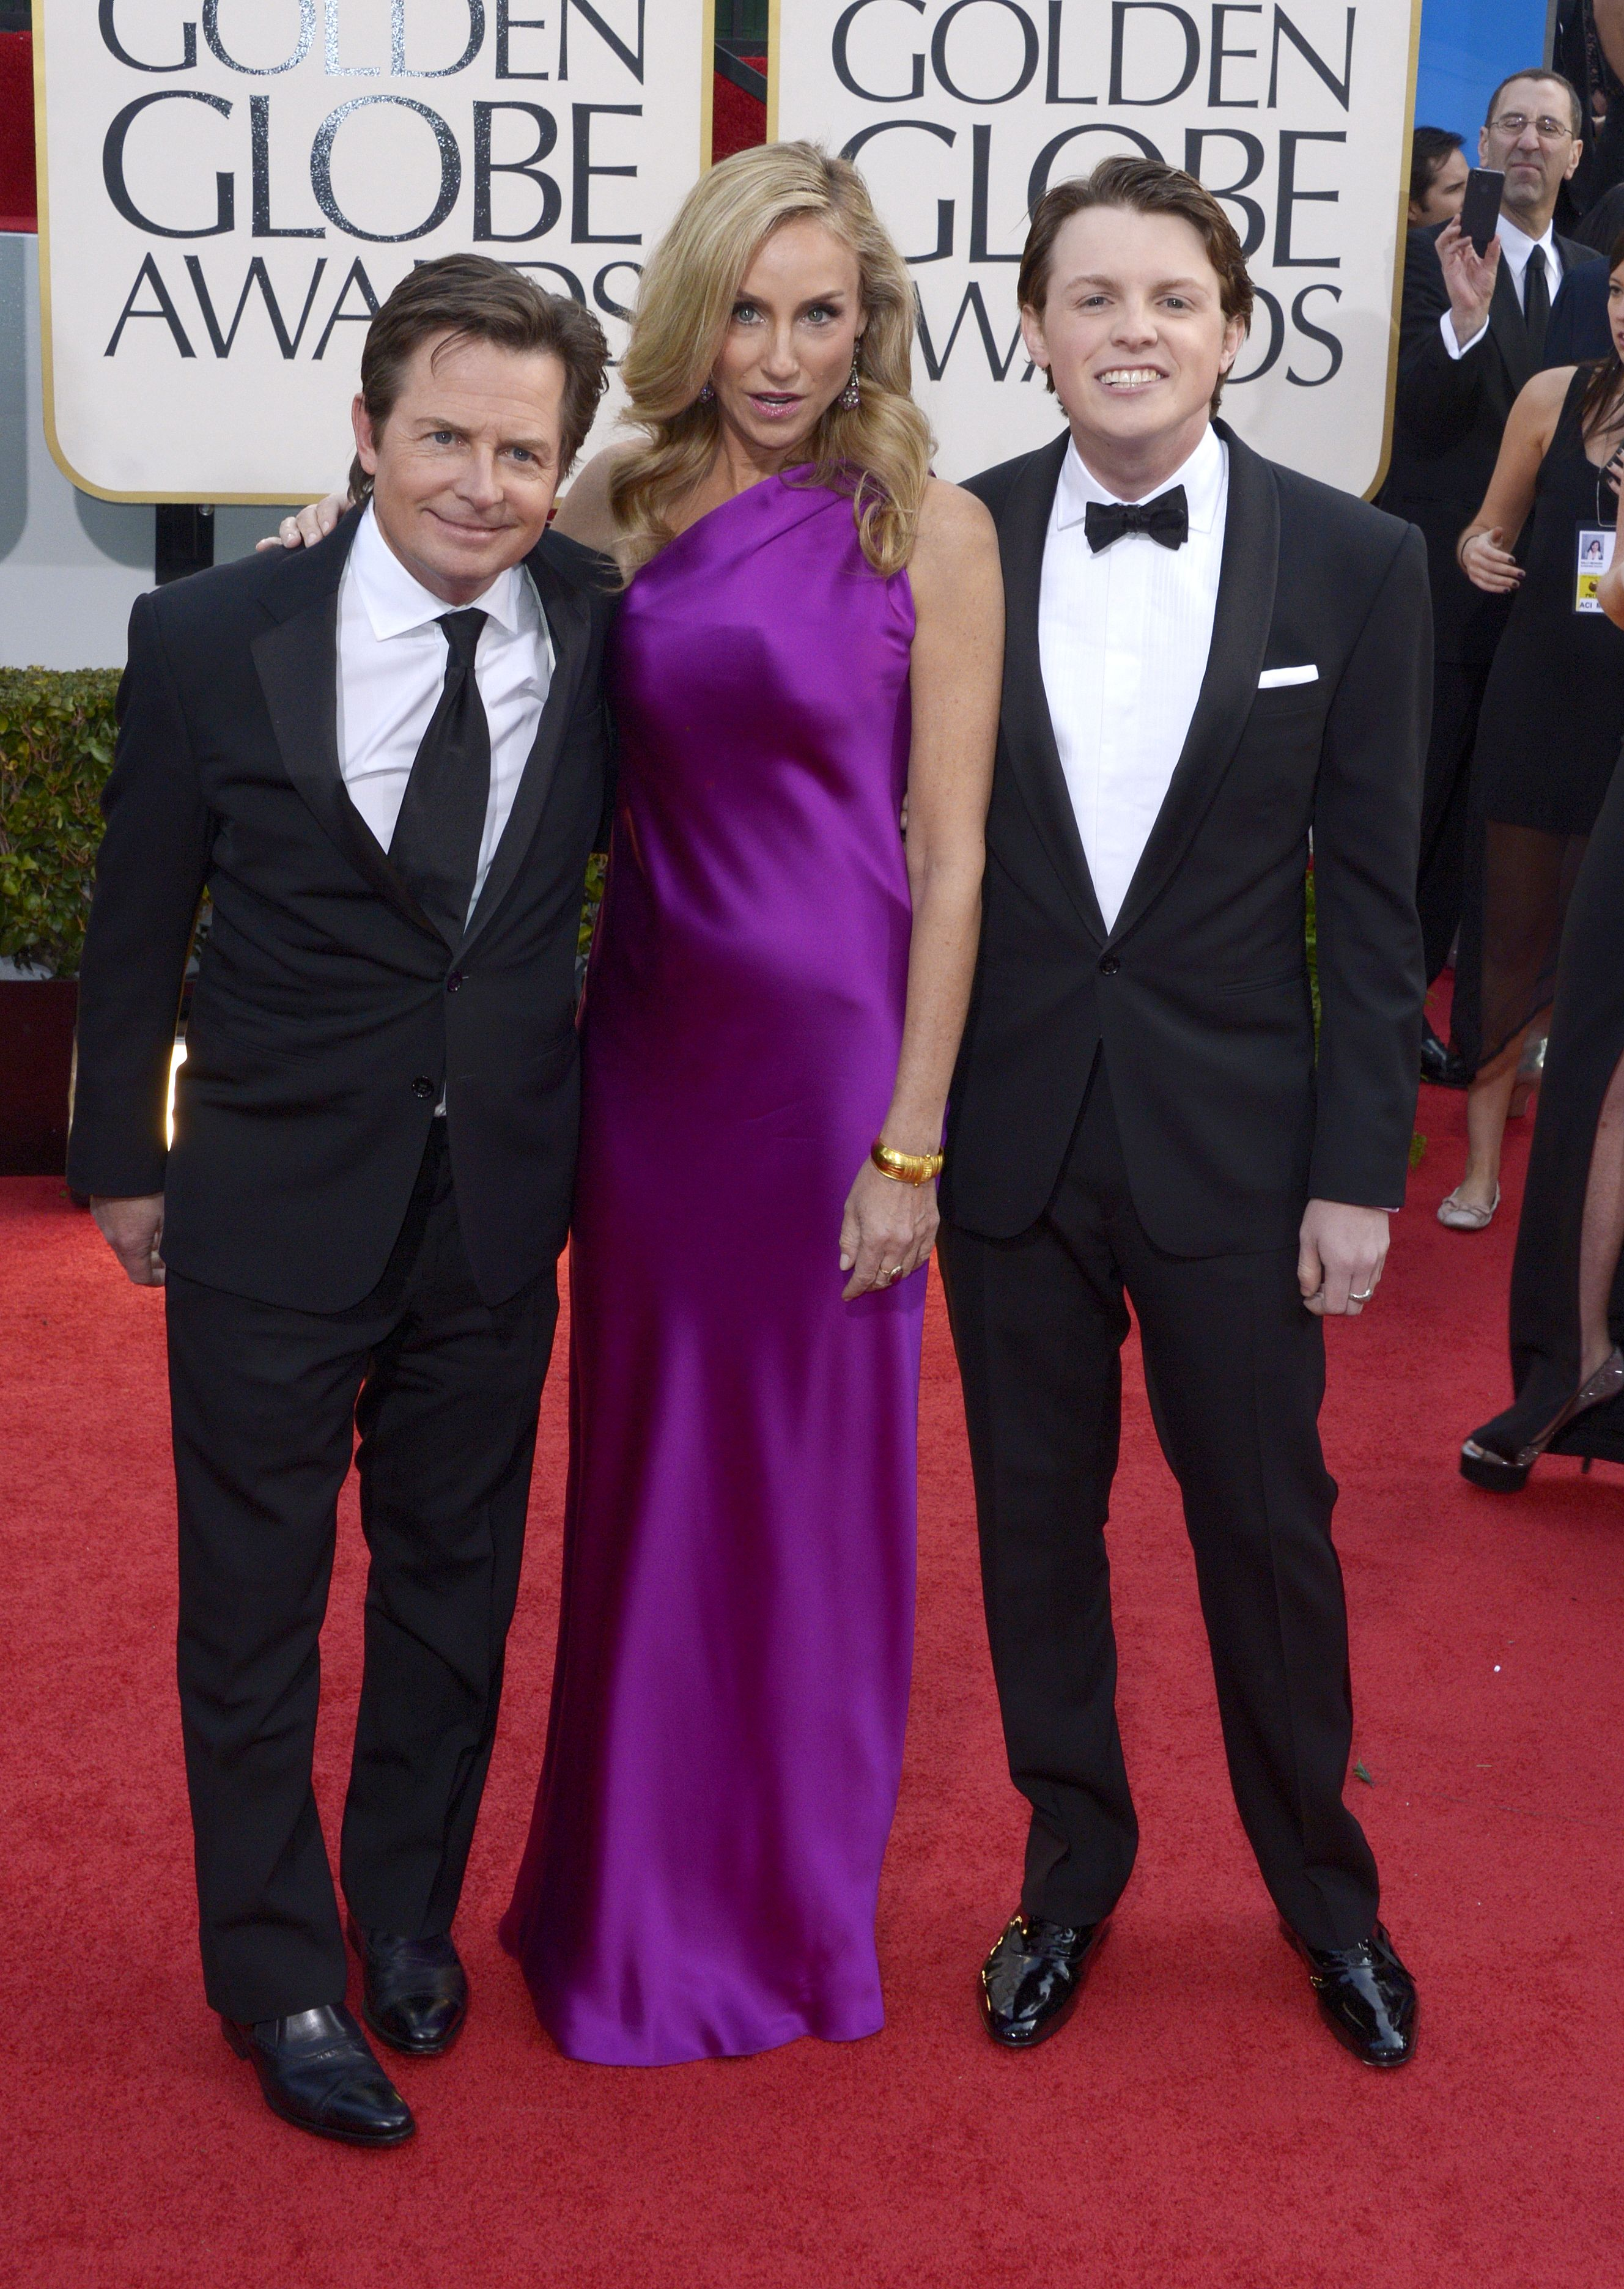 (l-r) Us Actors Michael J Fox Us Actress Tracy Pollan and Mr Golden Globe Sam Fox Arrive For the 70th Annual Golden Globe Awards Held at the Beverly Hilton Hotel in Beverly Hills Los Angeles California Usa 13 January 2013 United States Beverly HillsUsa Golden Globes 2013 - Jan 2013